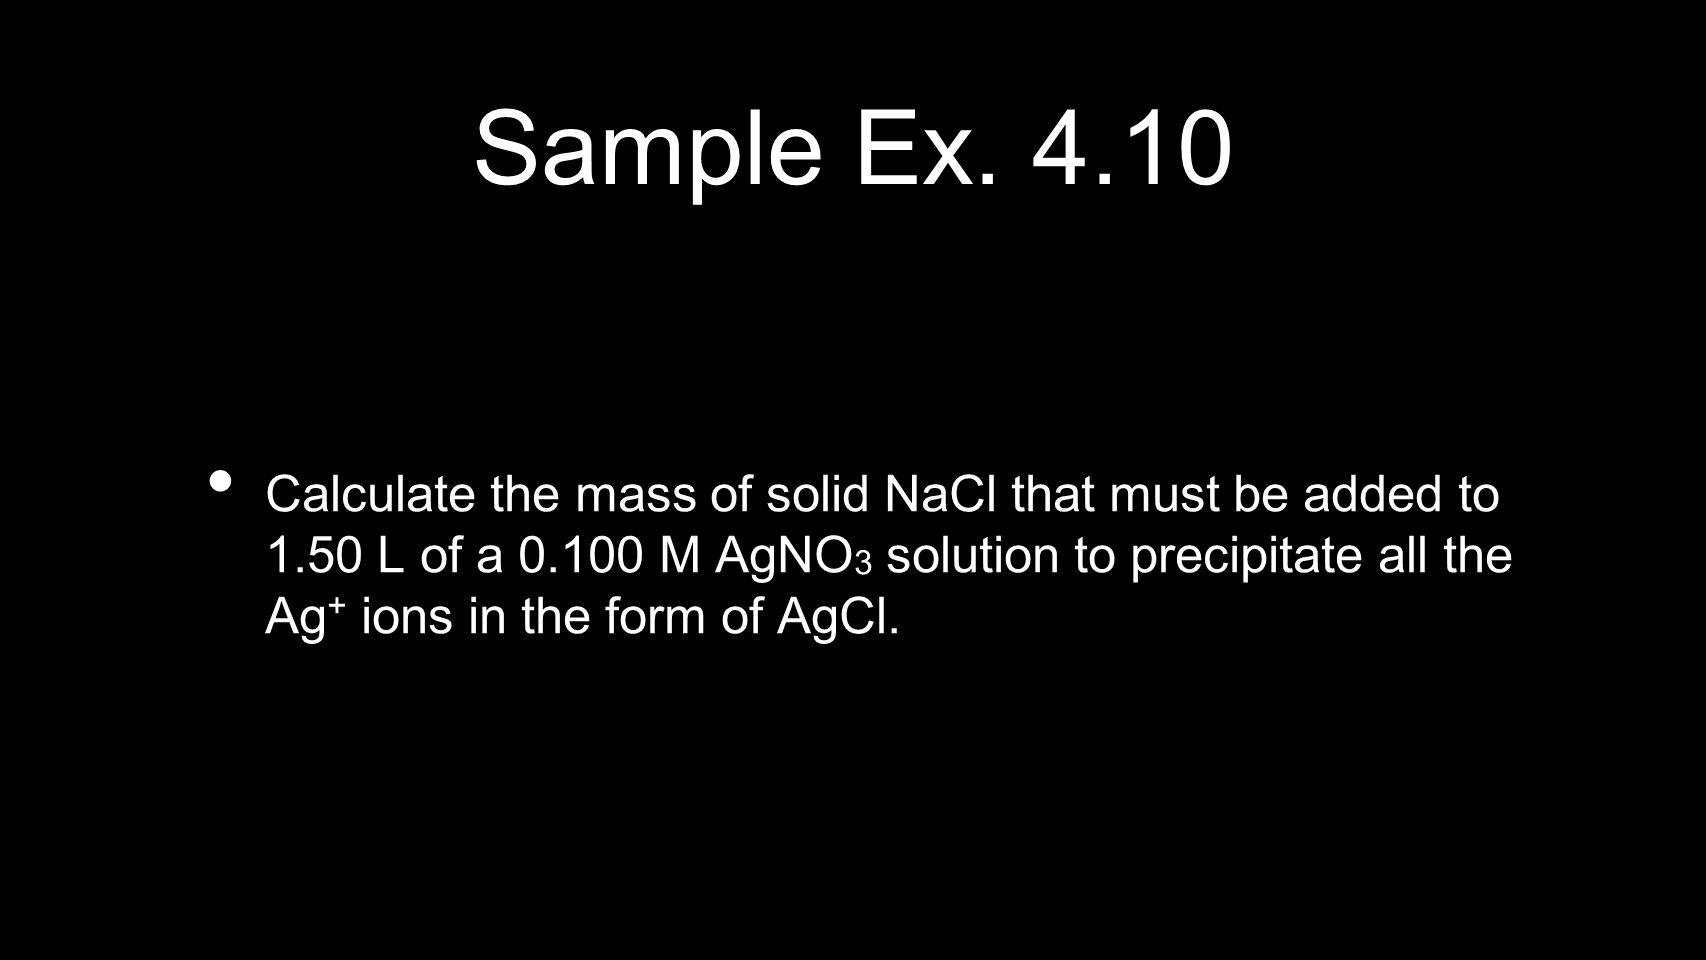 Sample Ex. 4.10